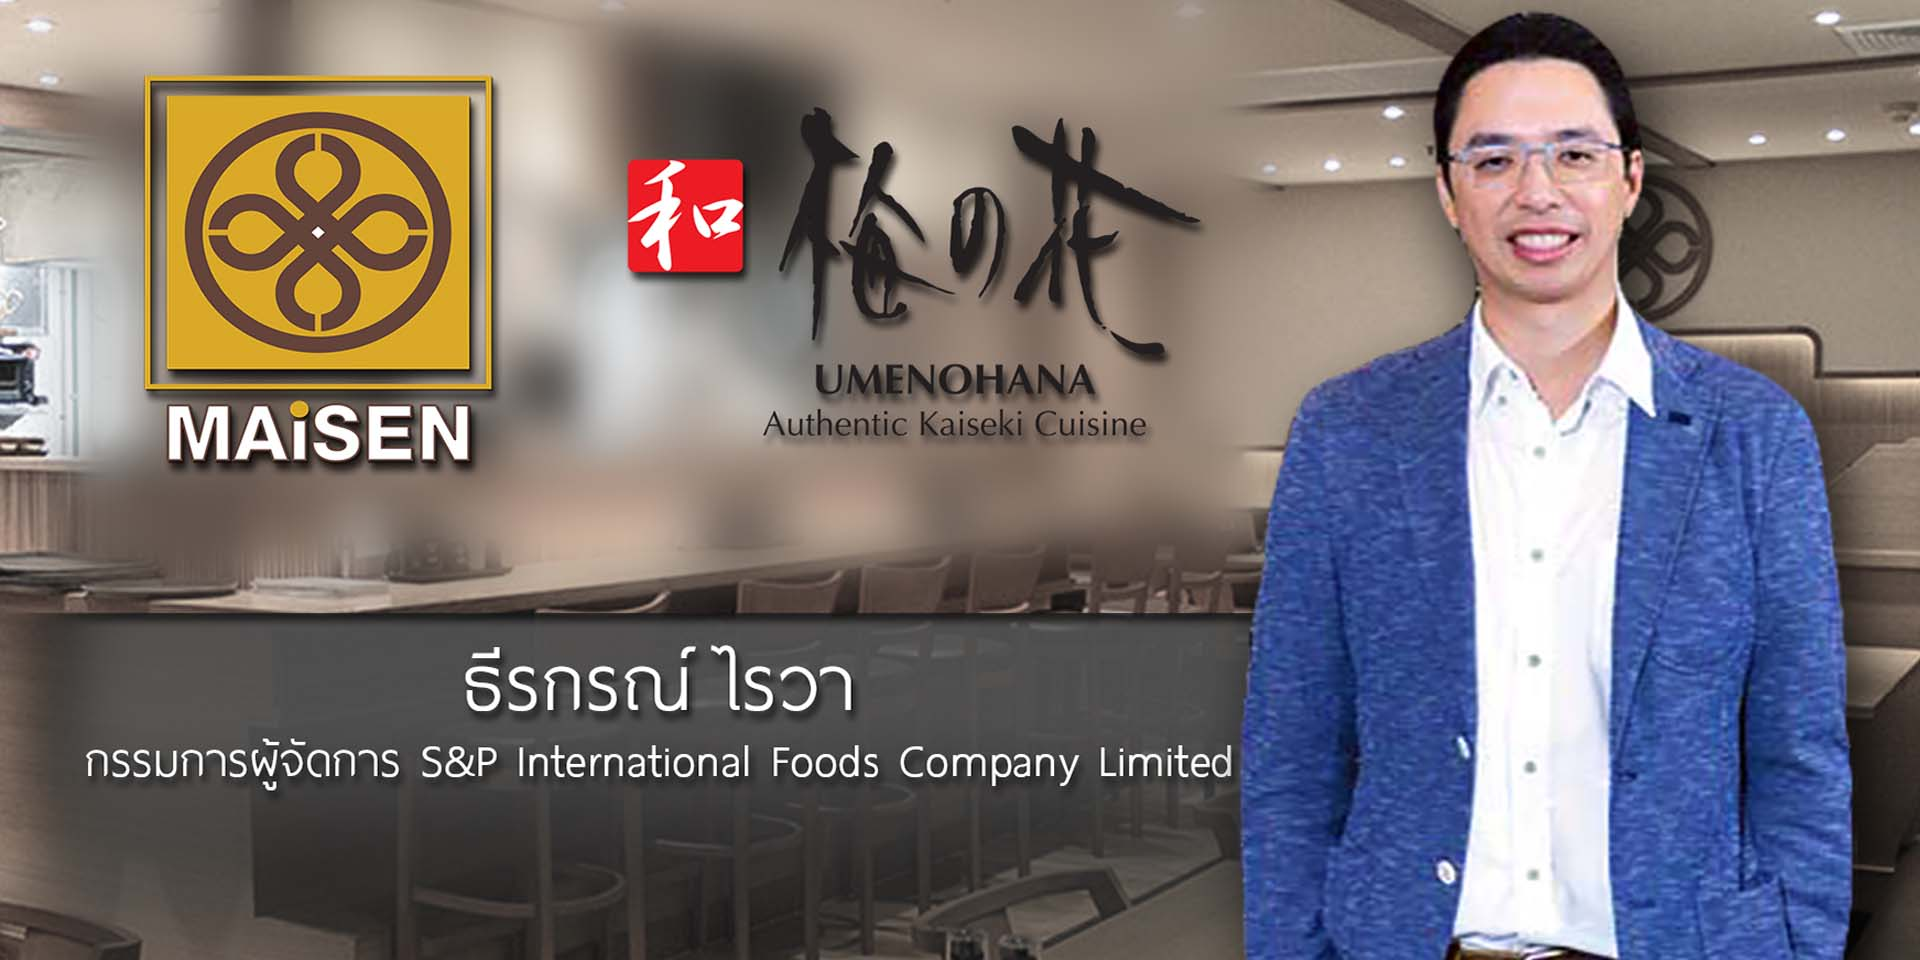 S&P International Foods Co.,Ltd. (Maisen), (Umenohana)